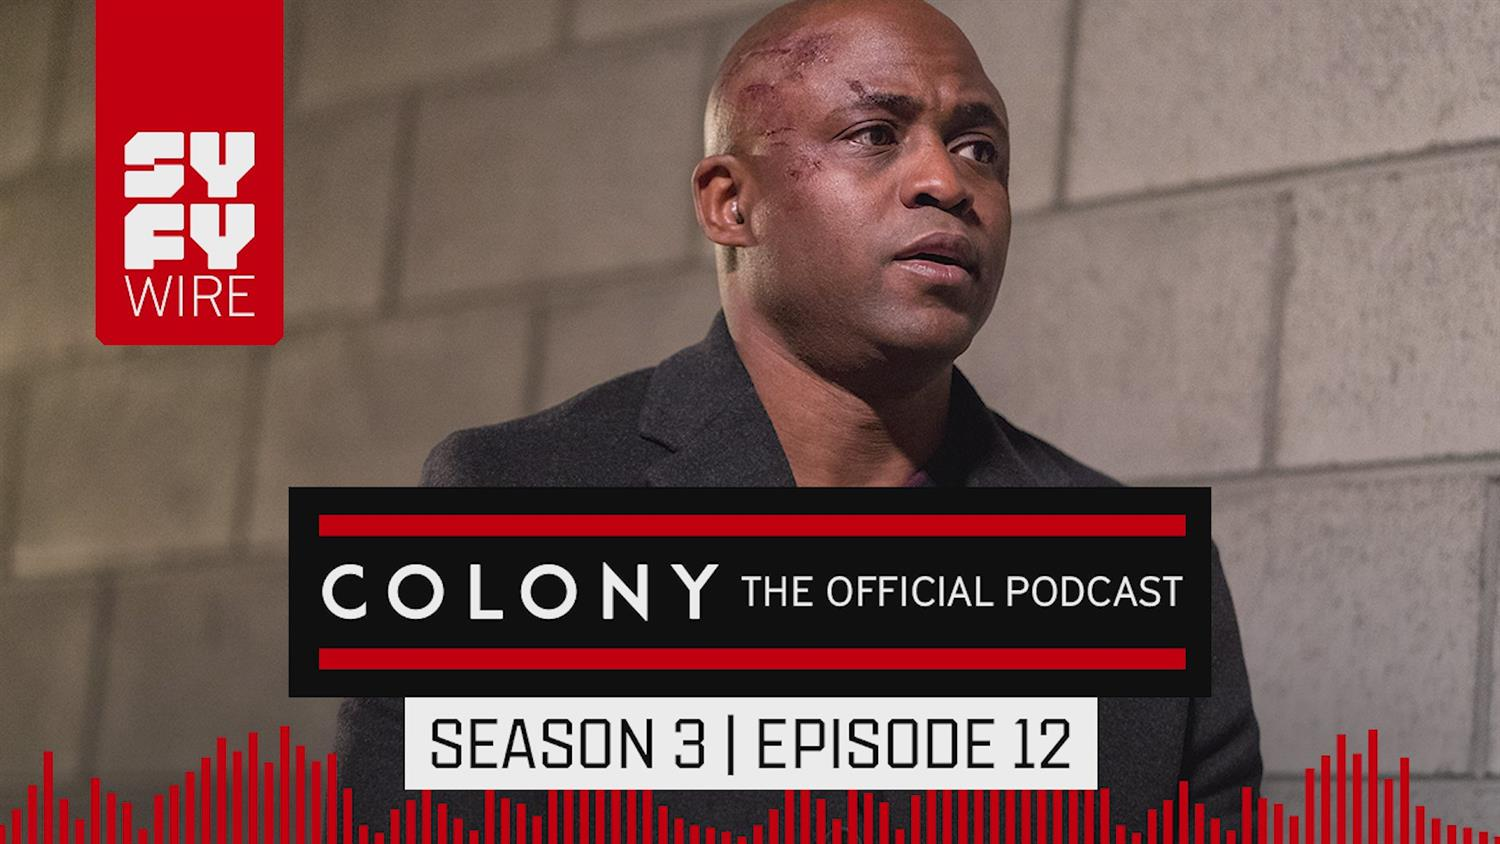 Colony The Official Podcast: Season 3, Episode 12